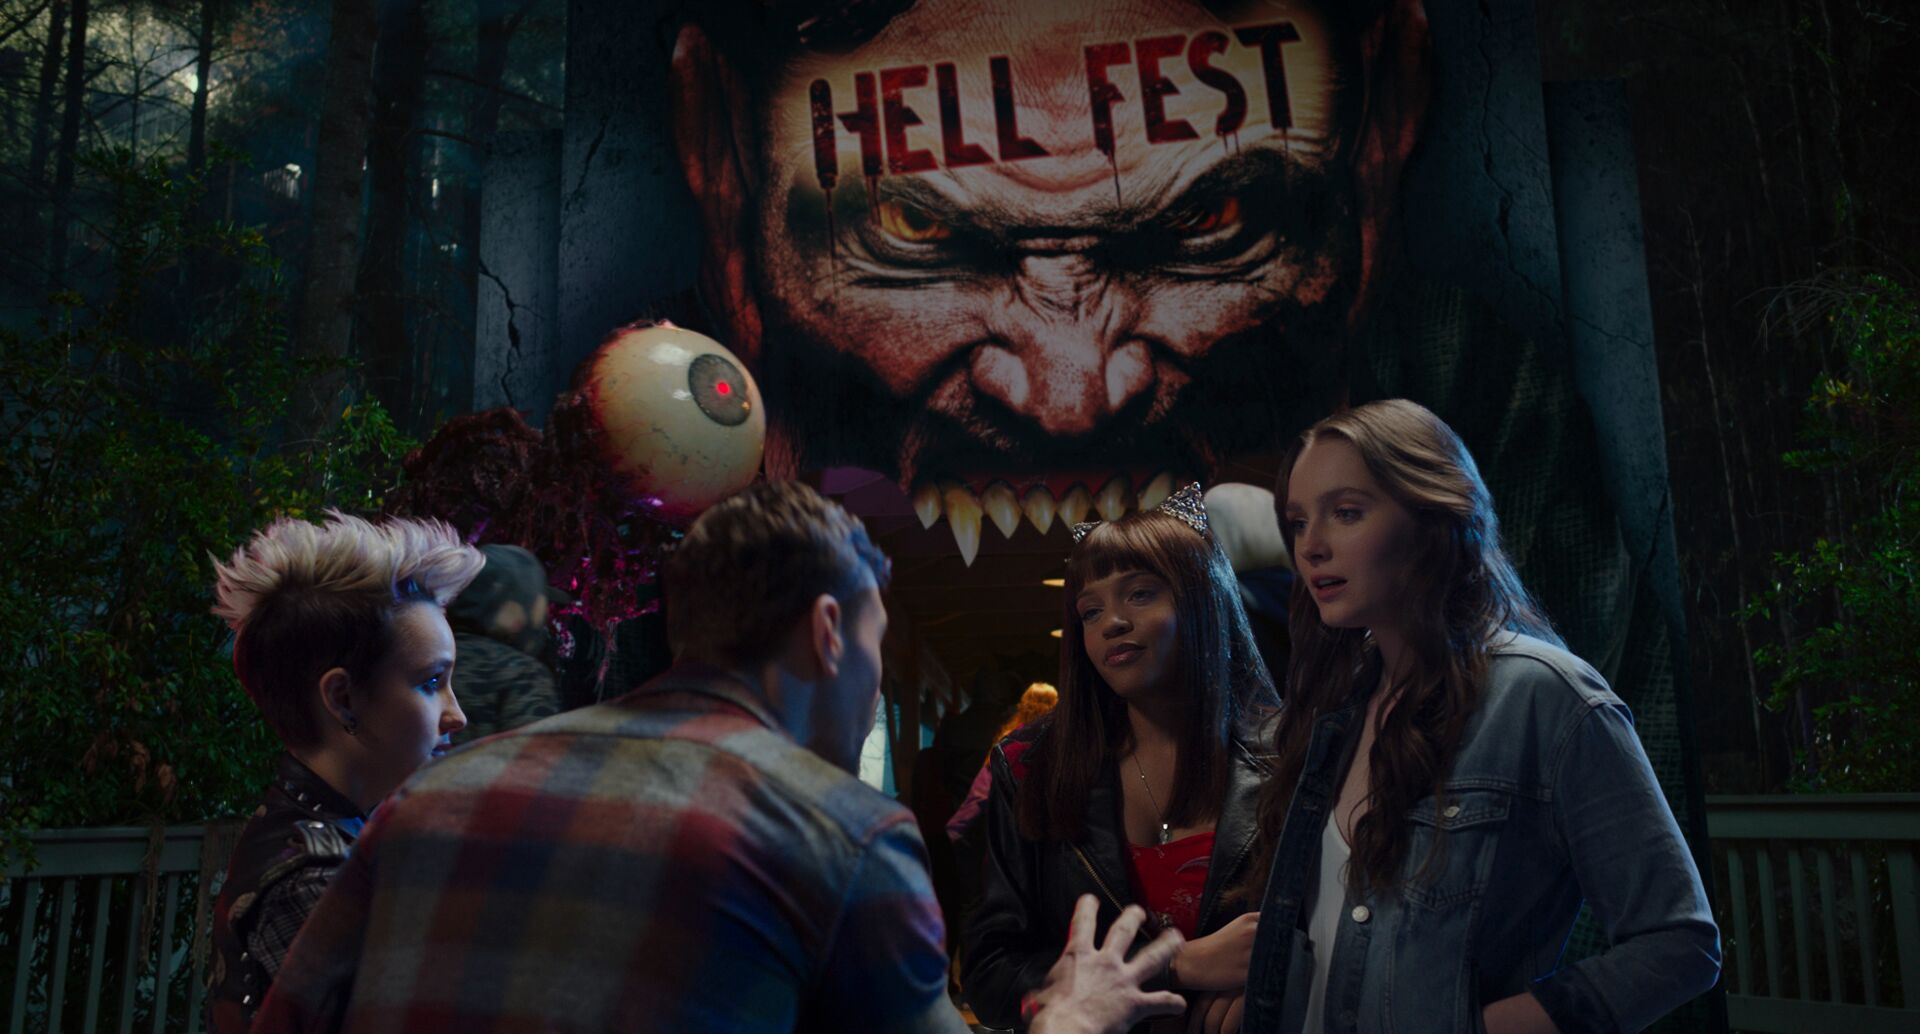 Hell Fest protagonists